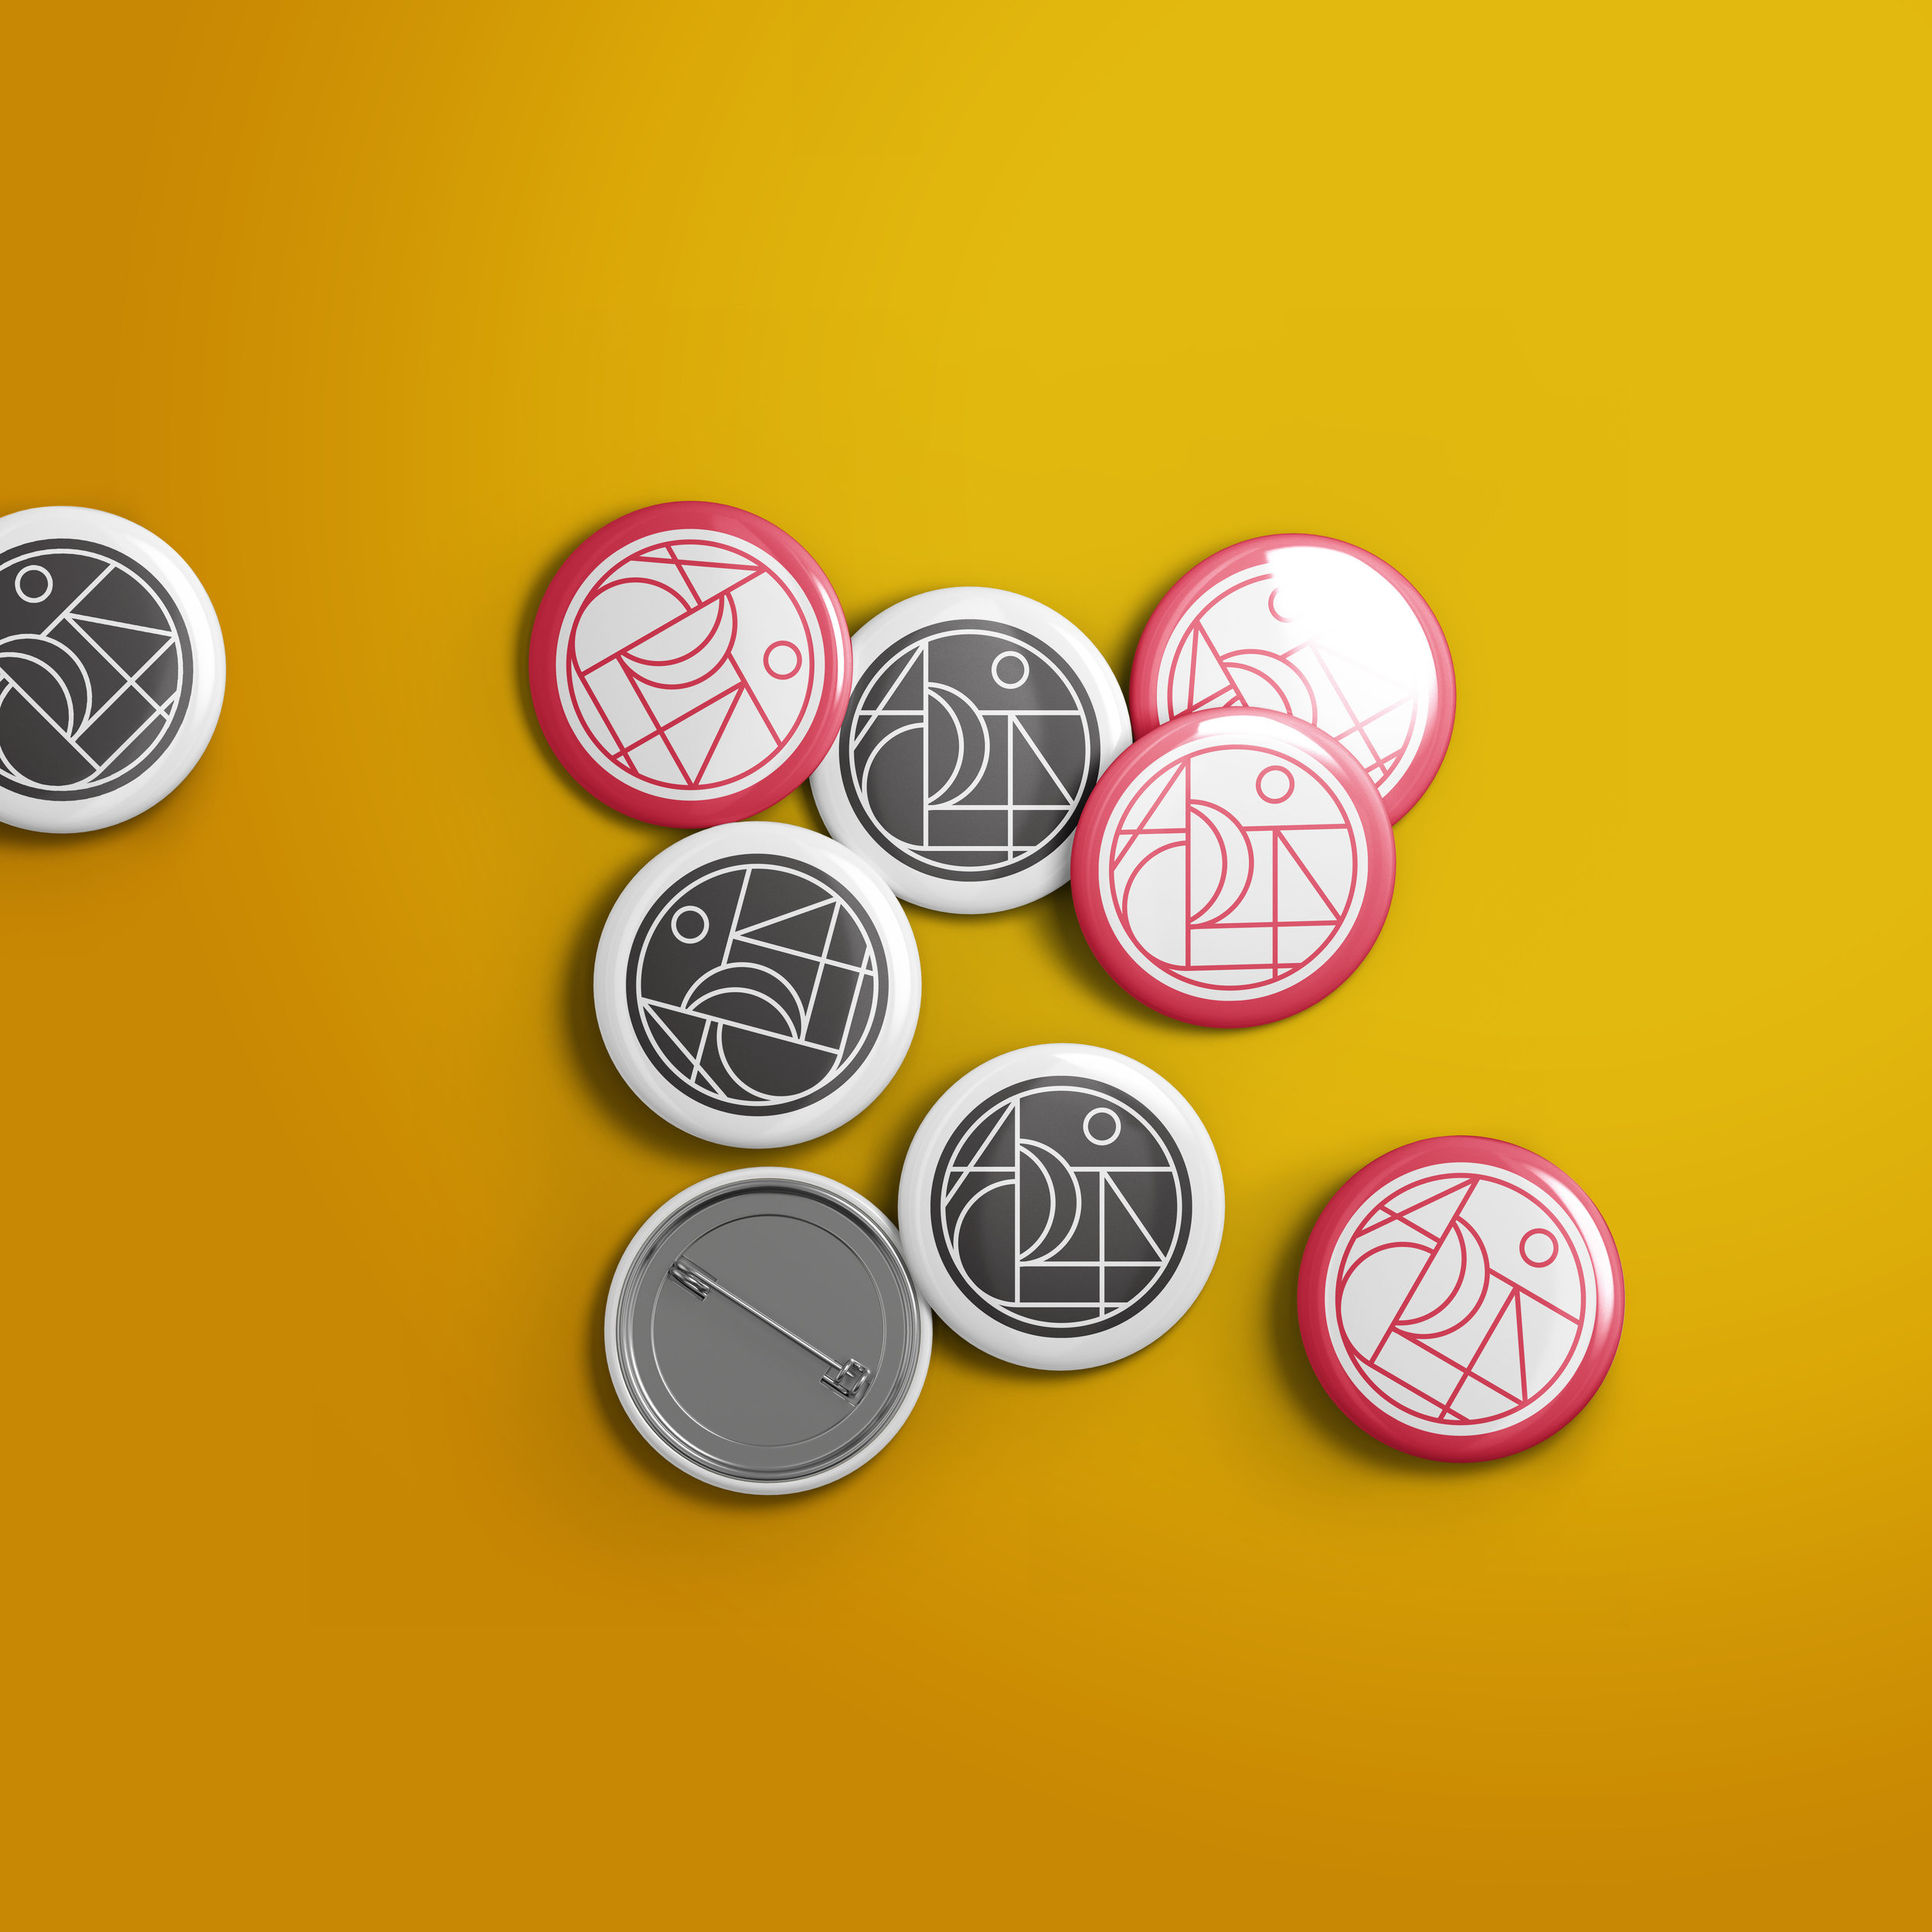 Pin-Buttons-Badge-Mockup.jpg